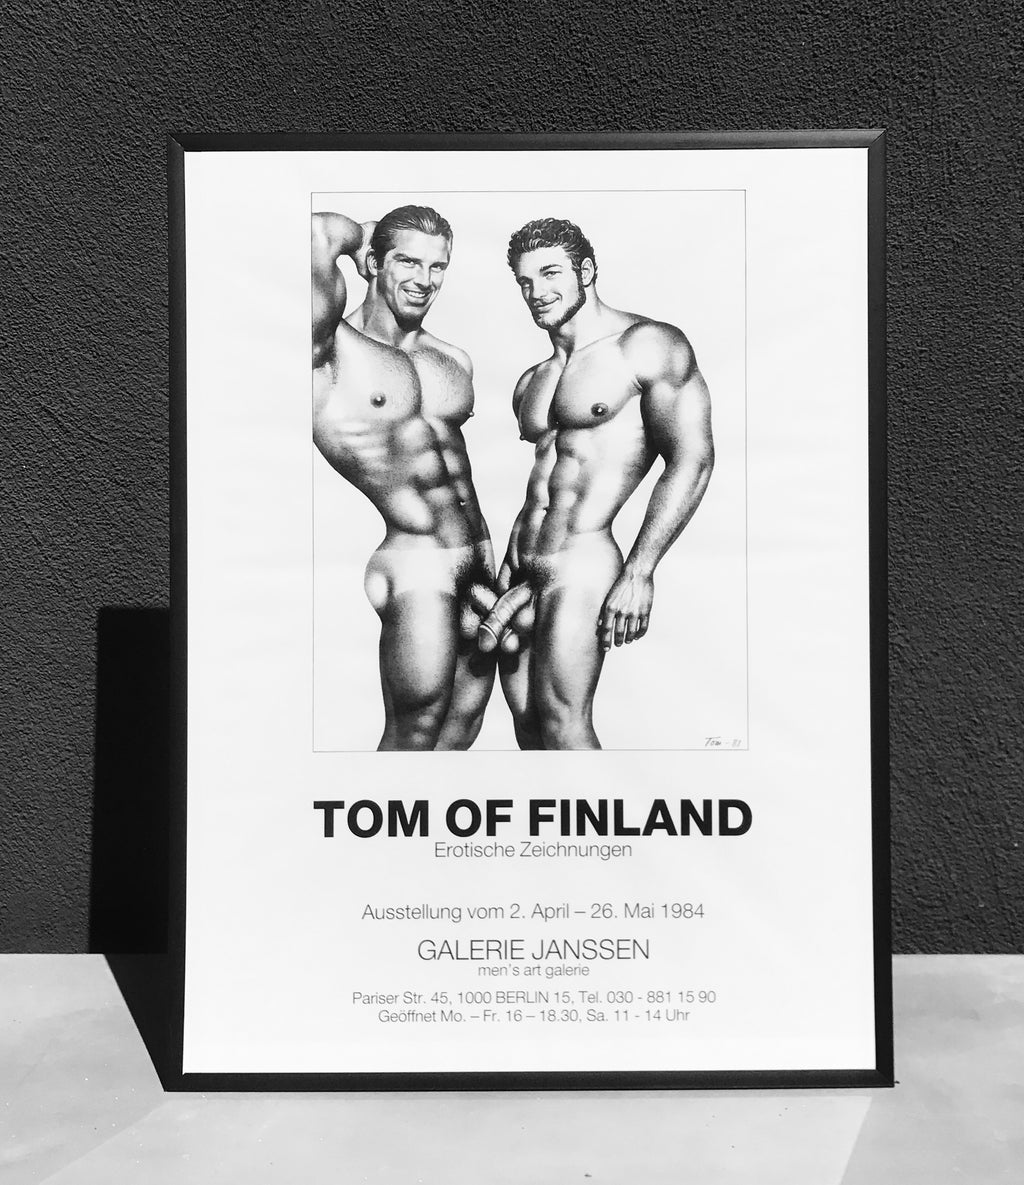 Tom of Finland Vintage 1984 Berlin Exhibition Posters